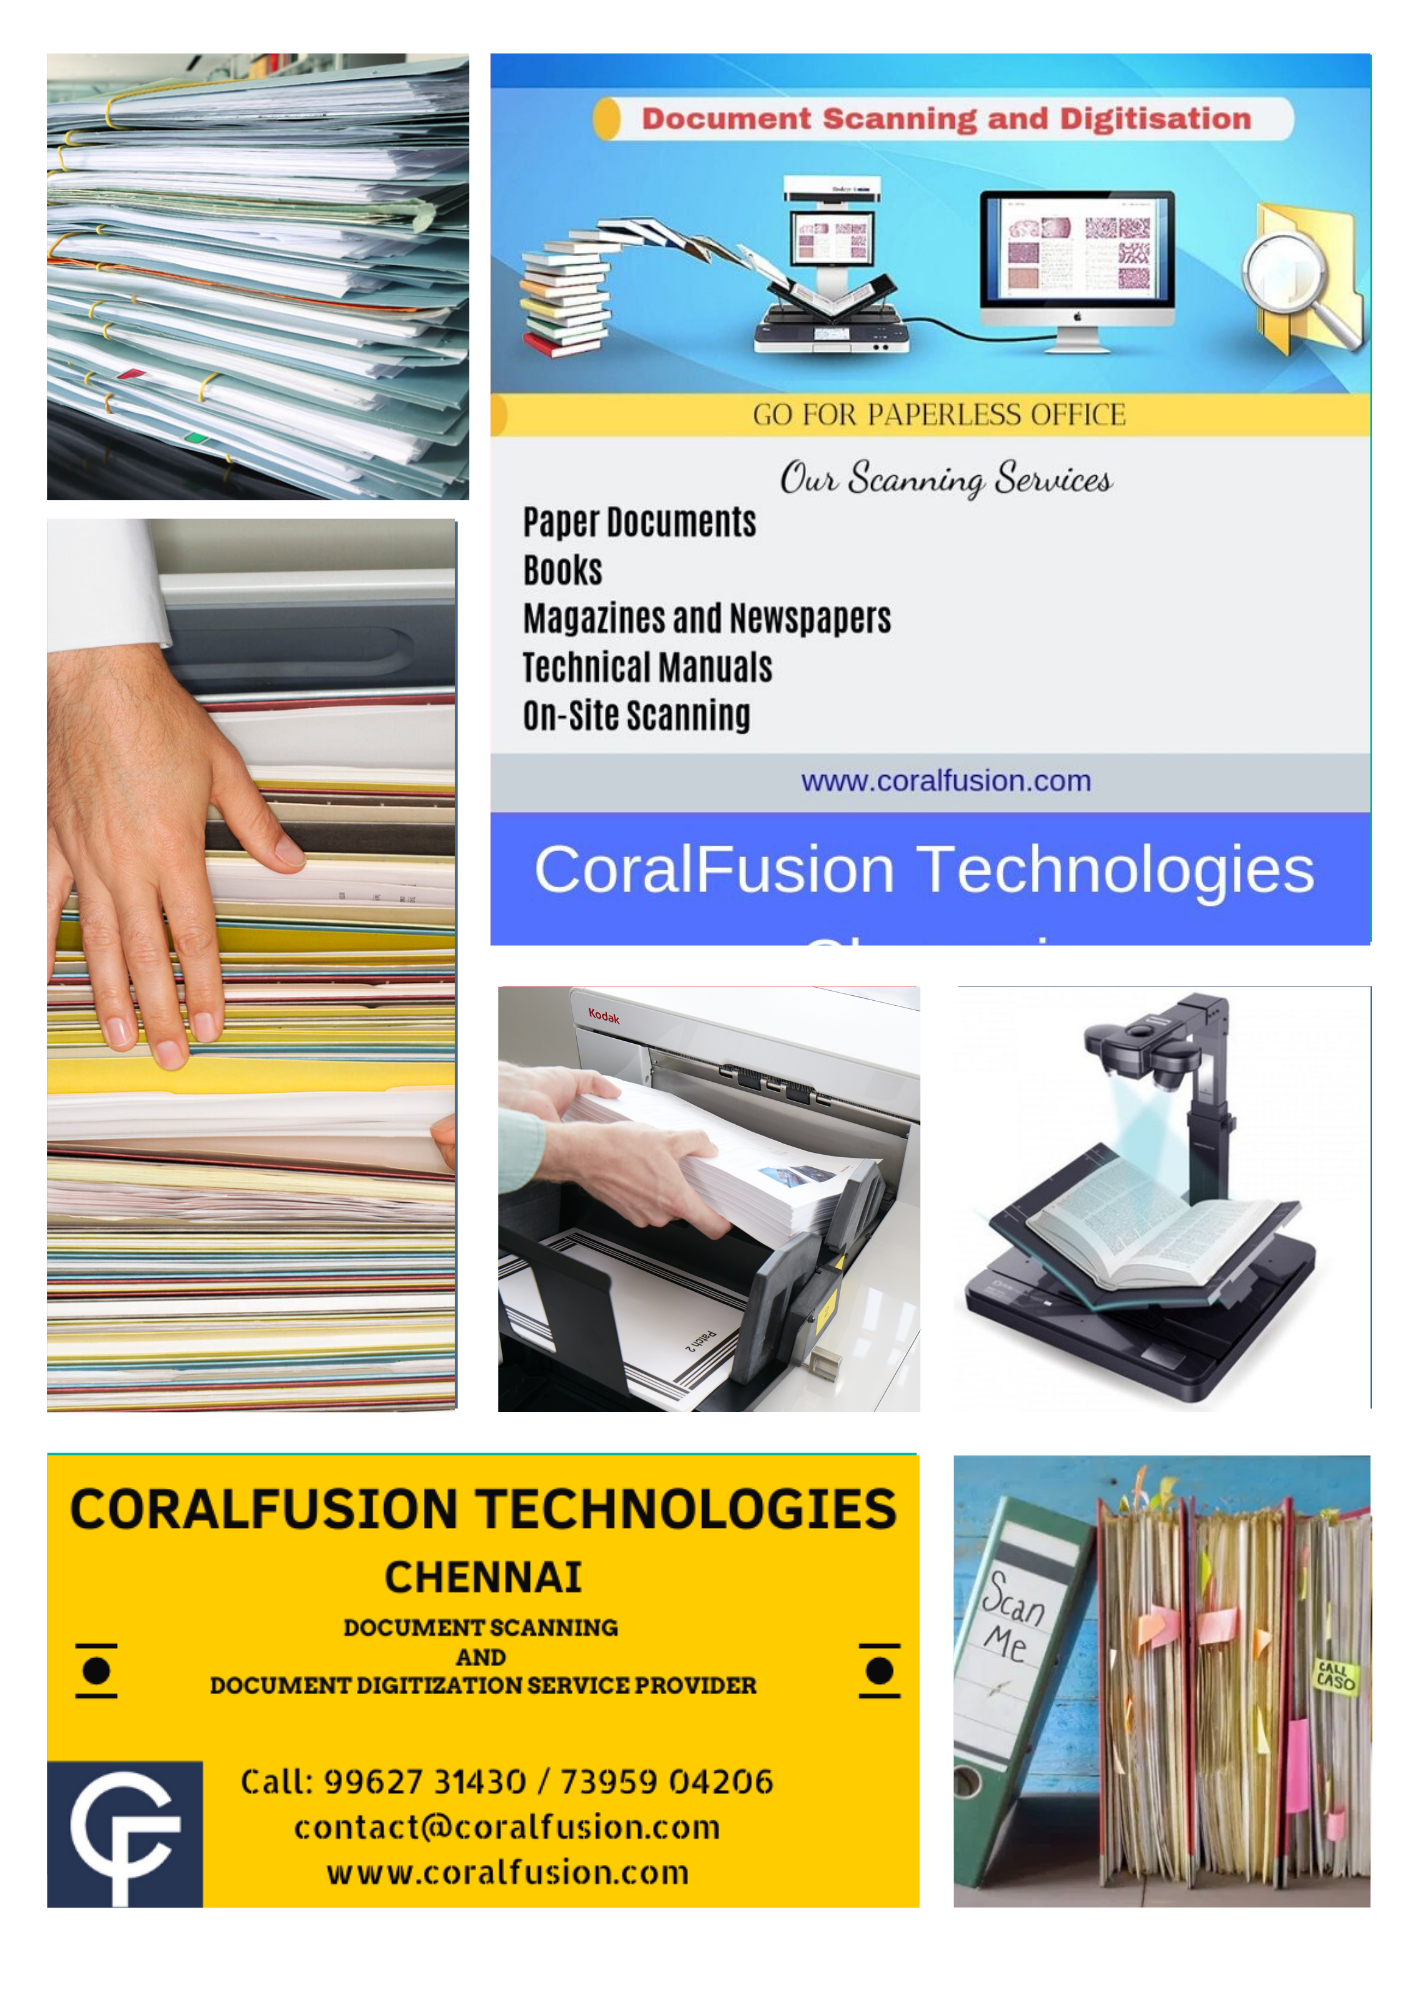 Document scanning works chennai-Services-Other Services-Chennai